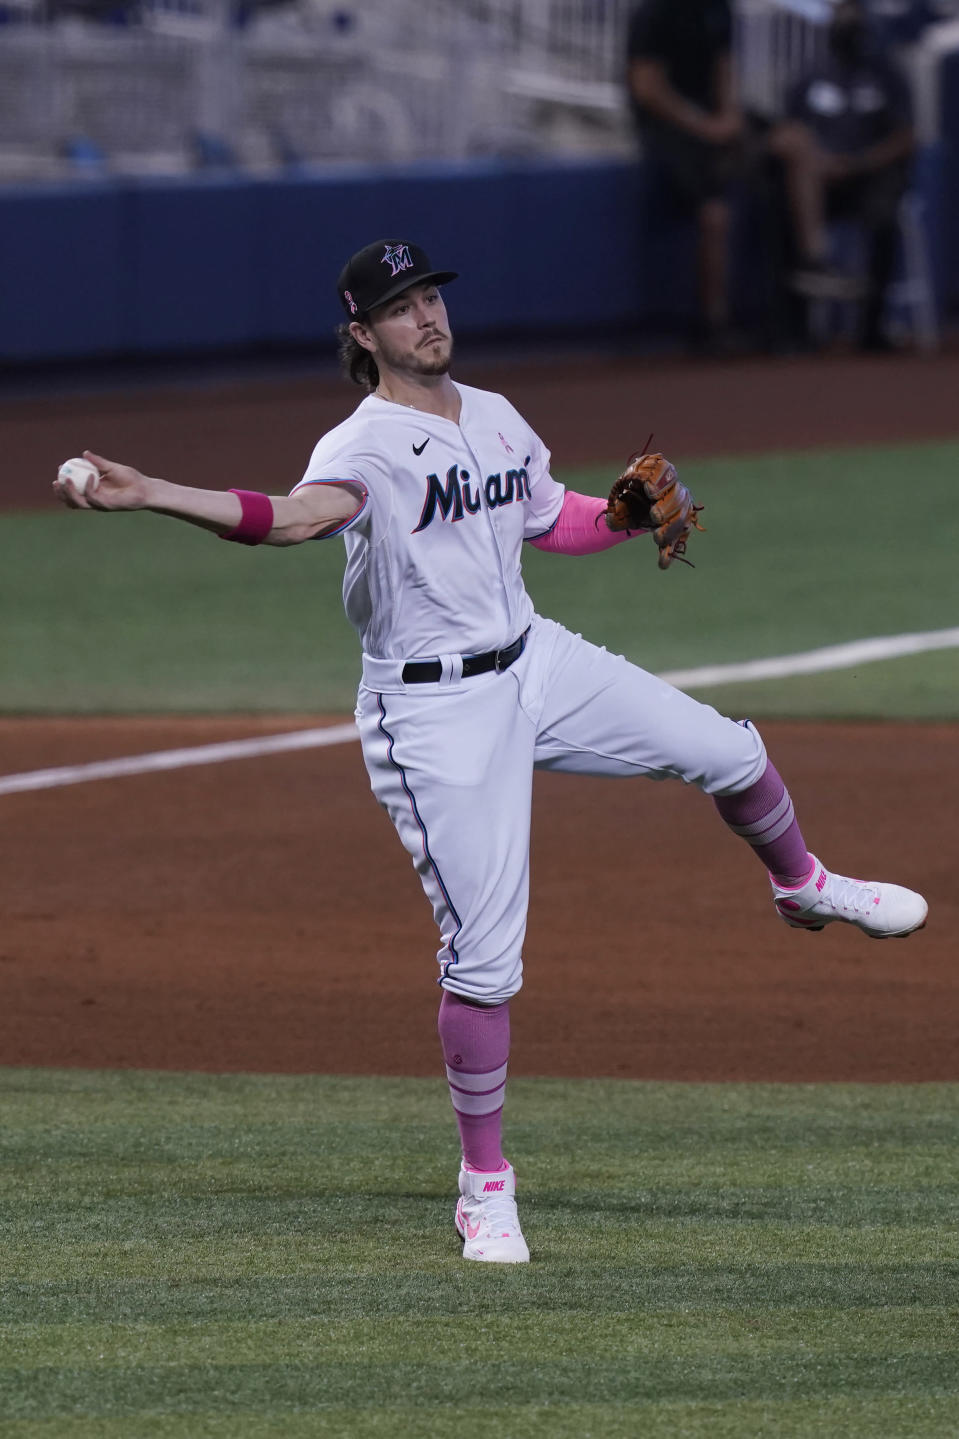 Miami Marlins third baseman Brian Anderson throws to first base on a hit by Milwaukee Brewers' Luis Urias, during the fourth inning of a baseball game, Sunday, May 9, 2021, in Miami. (AP Photo/Marta Lavandier)